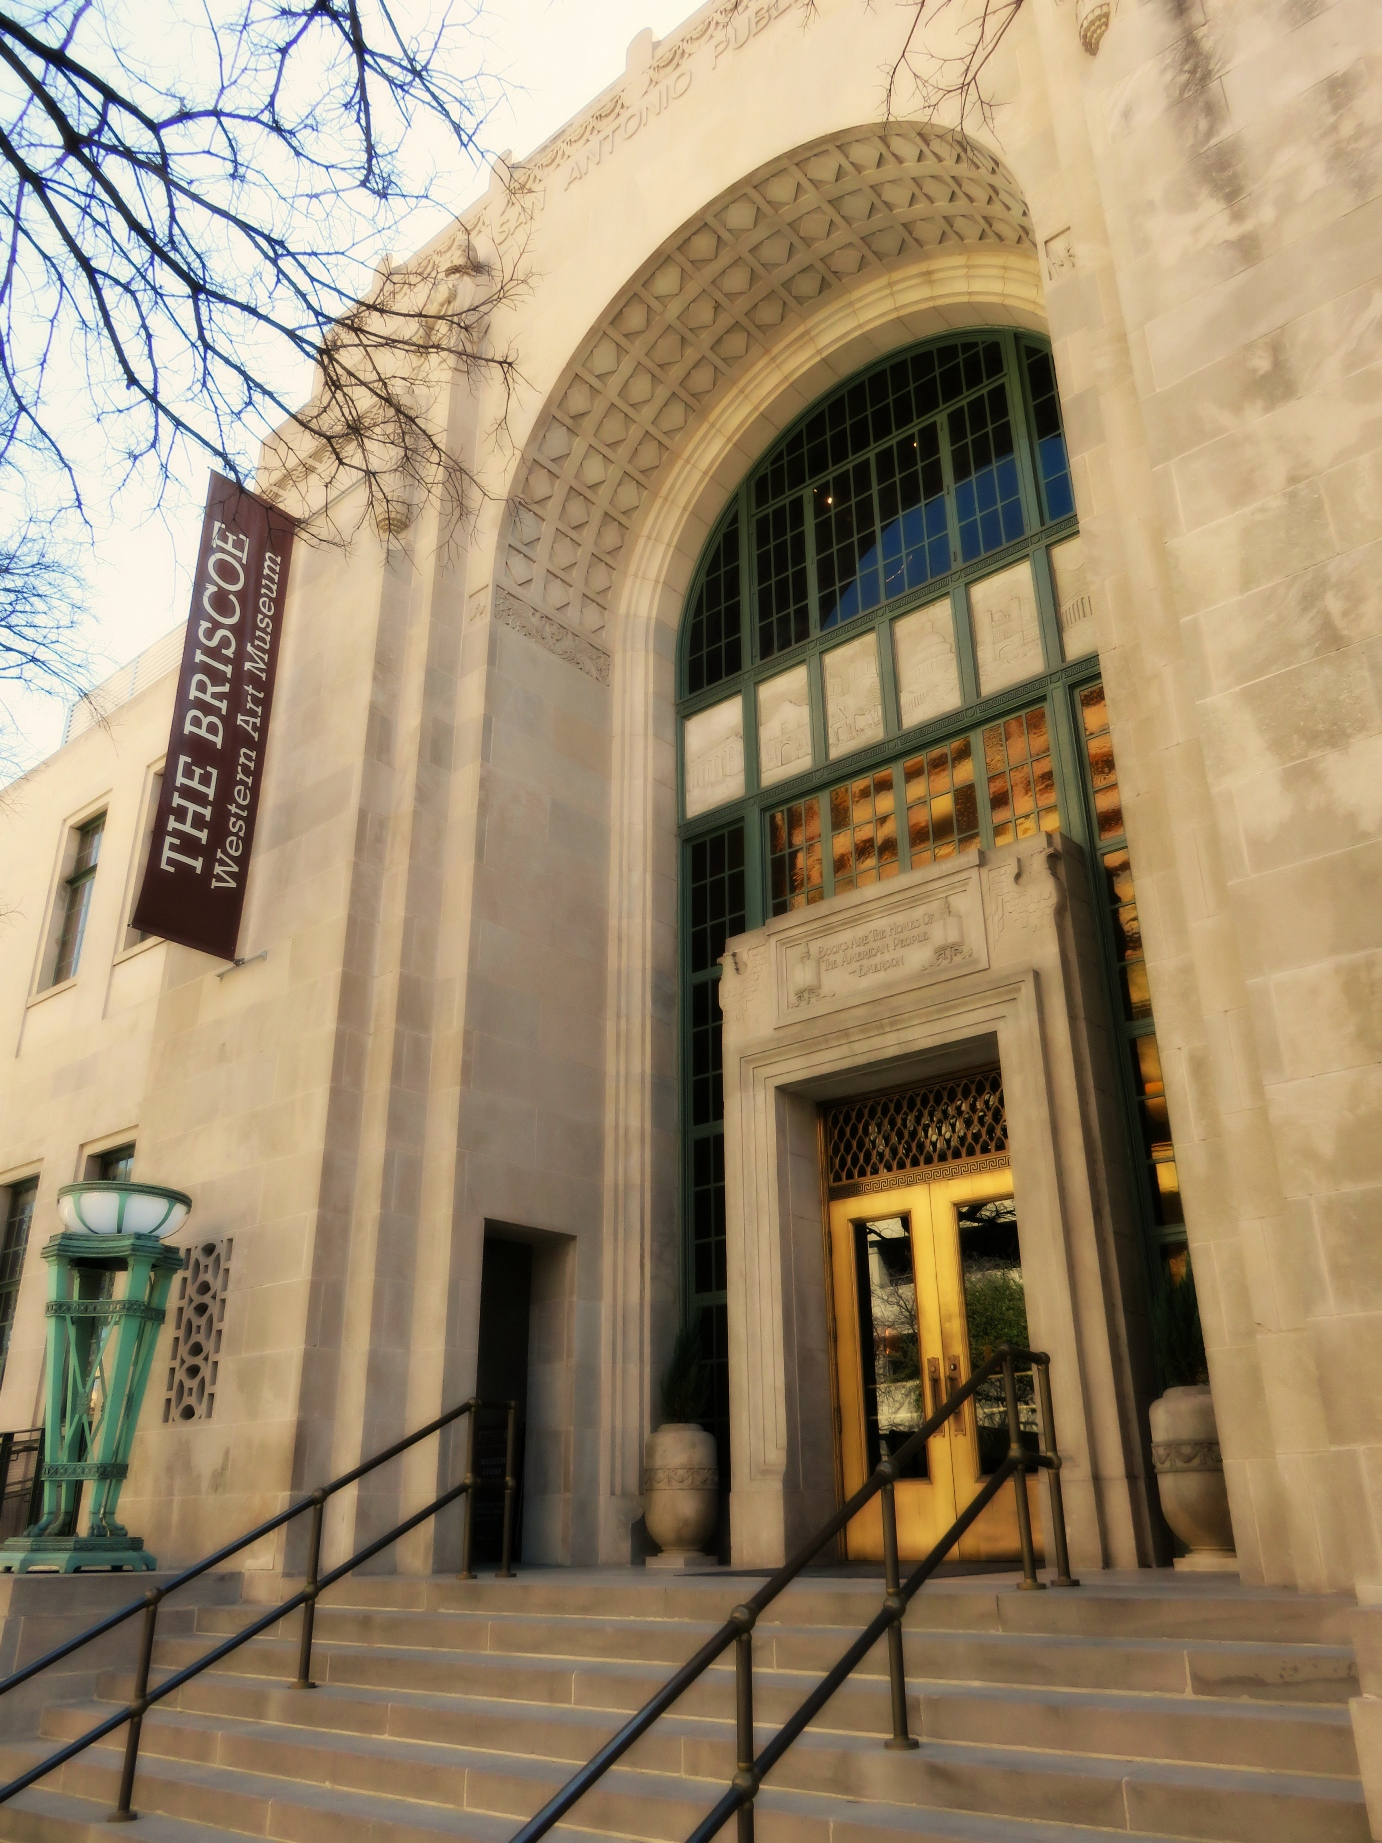 Briscoe Western Art Museum Entrance (Photo courtesy of the Briscoe Western Art Museum)